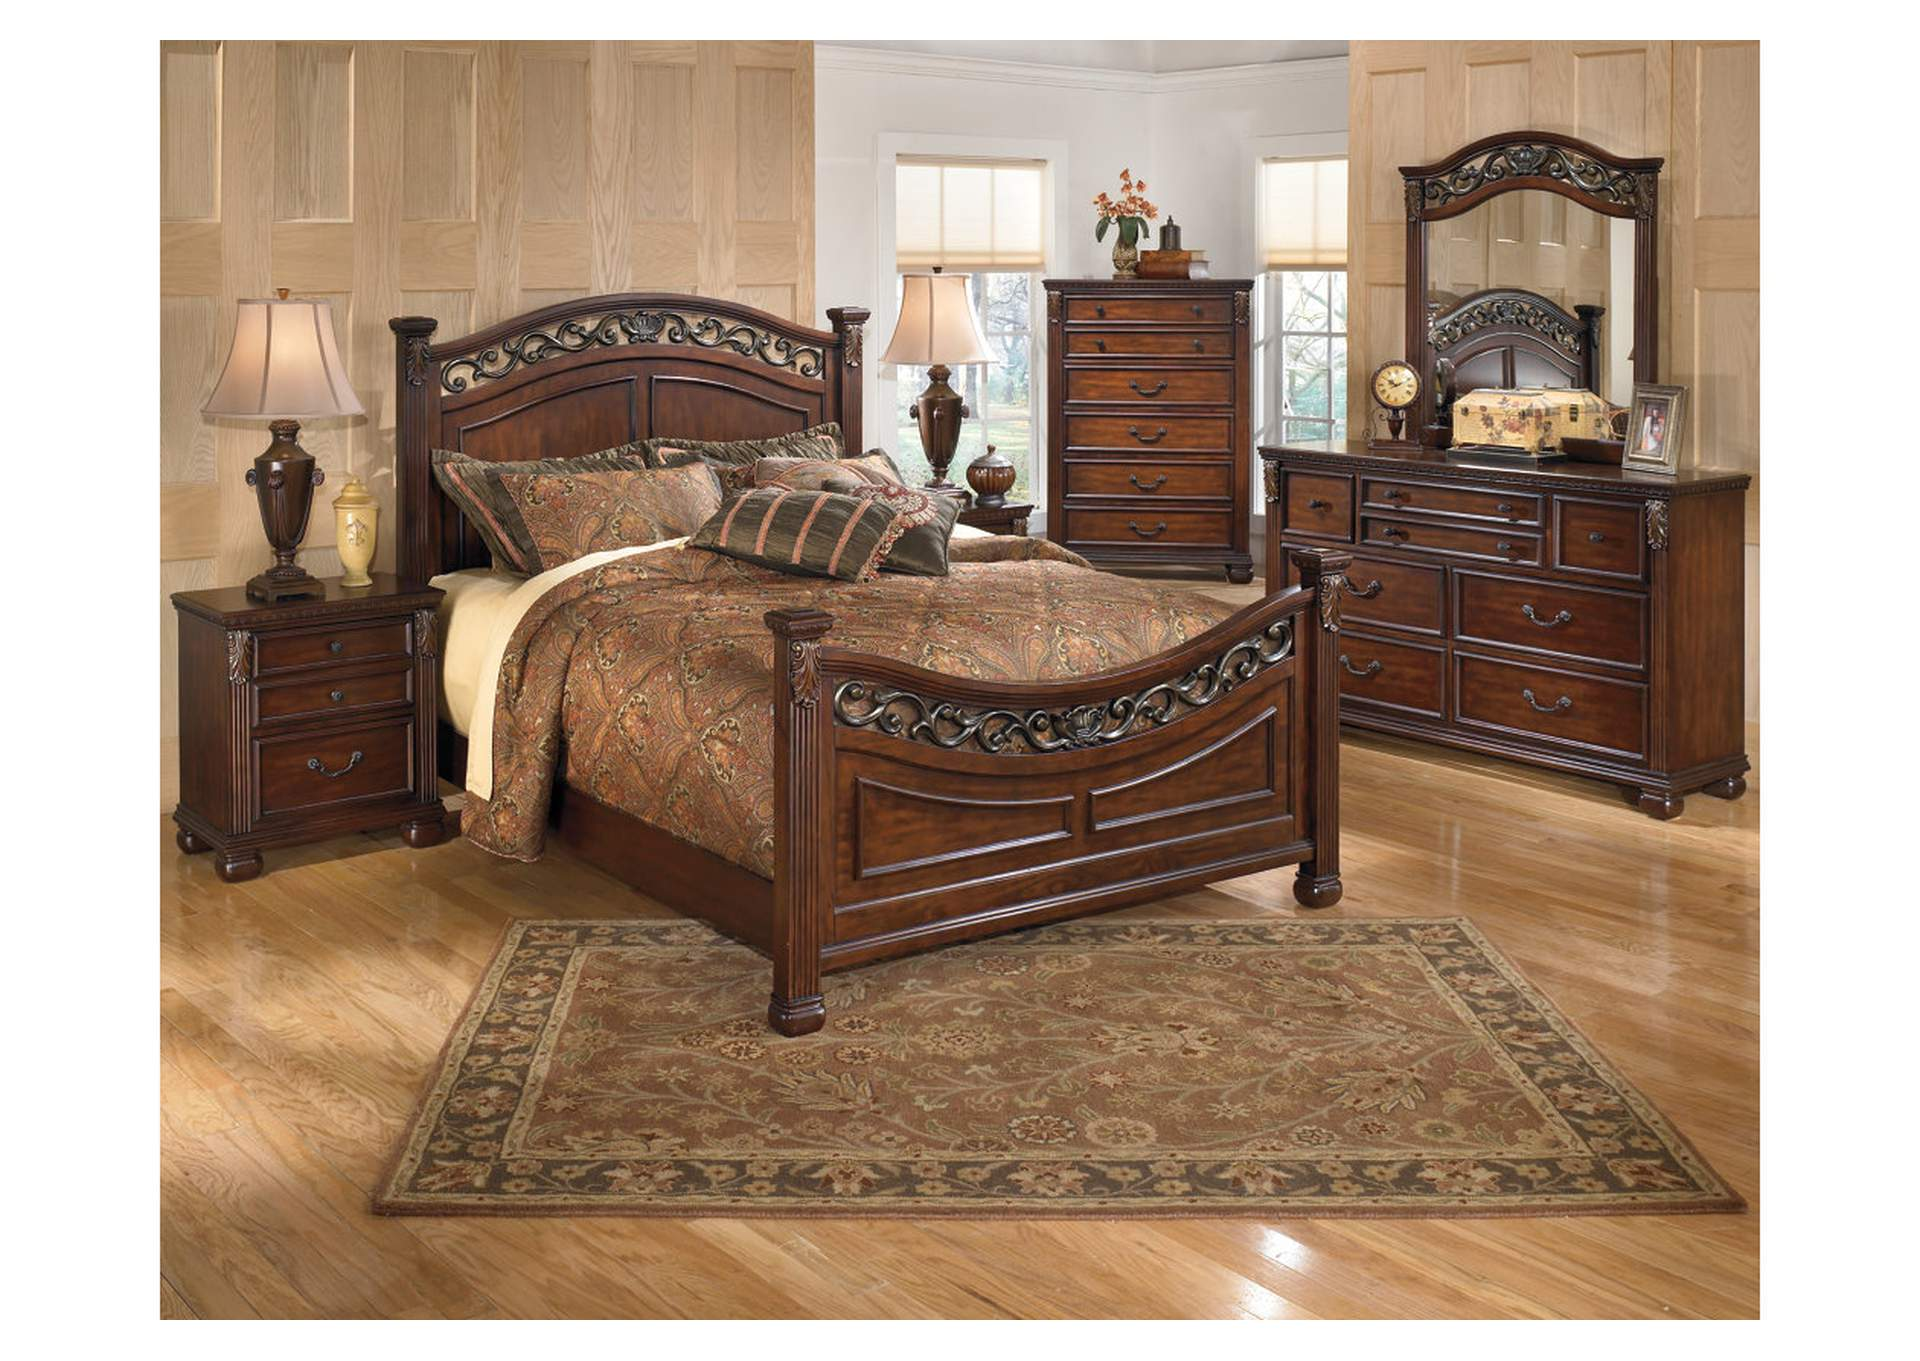 Leahlyn Queen Panel Bed w/Dresser, Mirror & Nightstand,Signature Design by Ashley